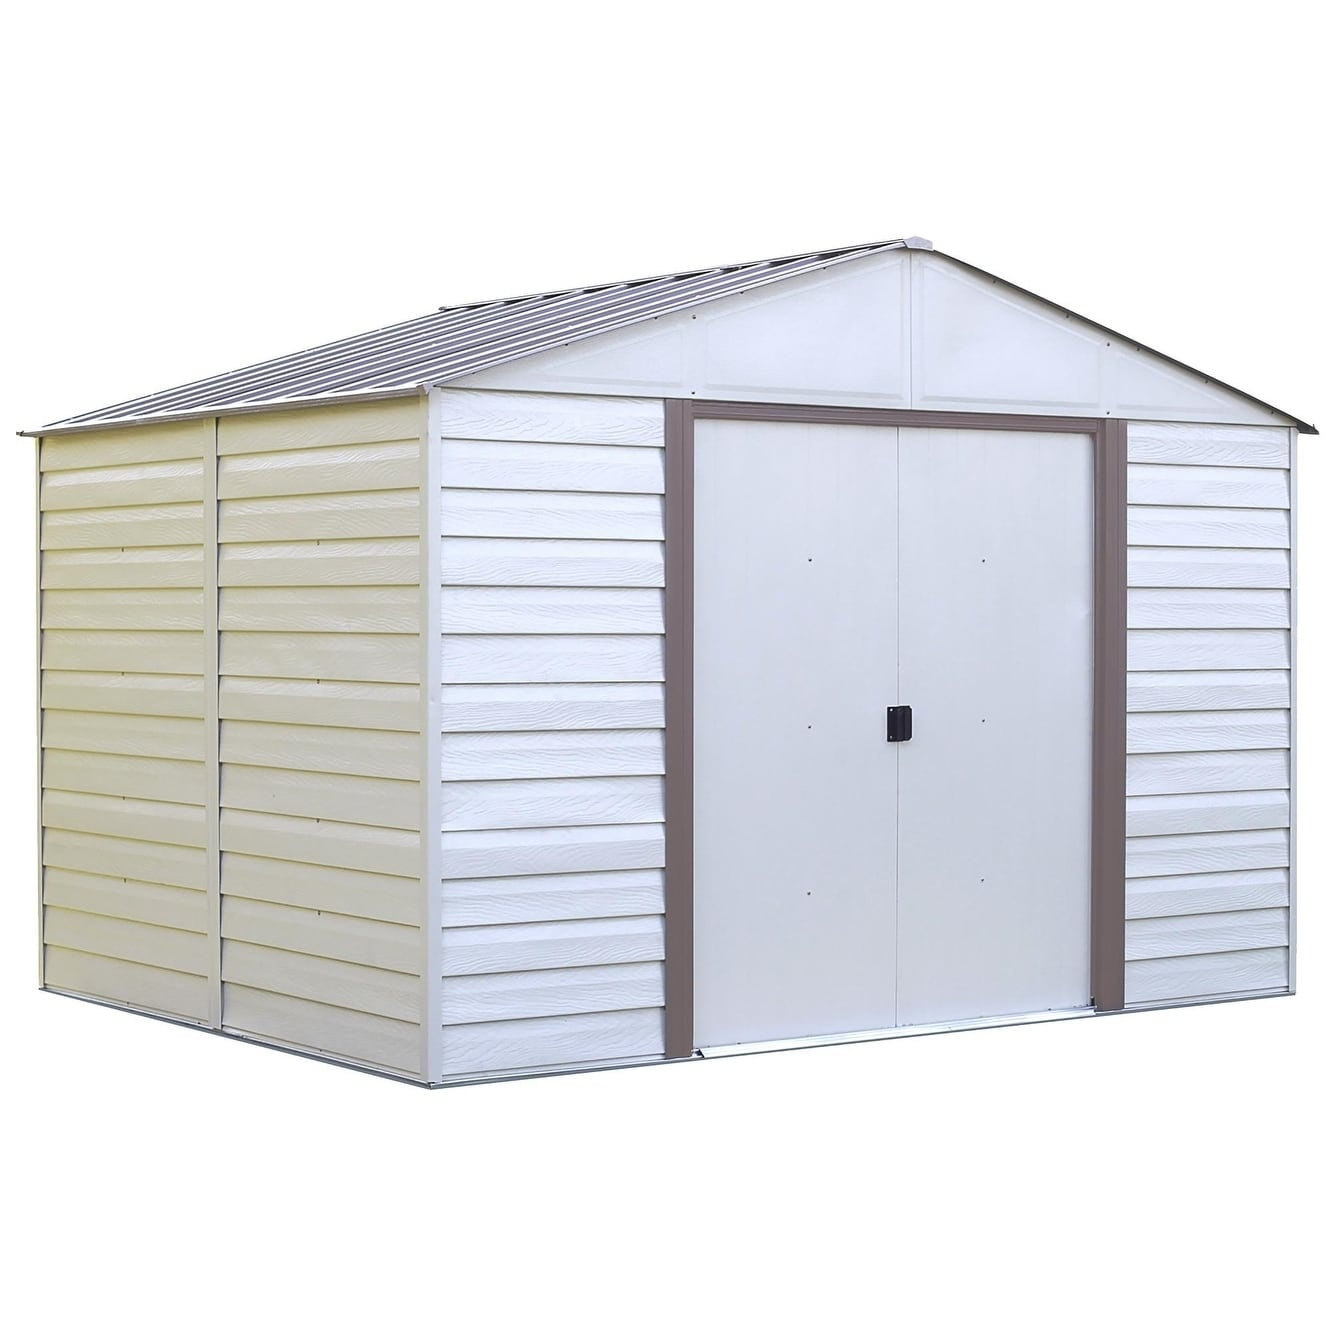 Arrow Group Vinyl Milford 10 x 12 Storage Shed, Beige Off...